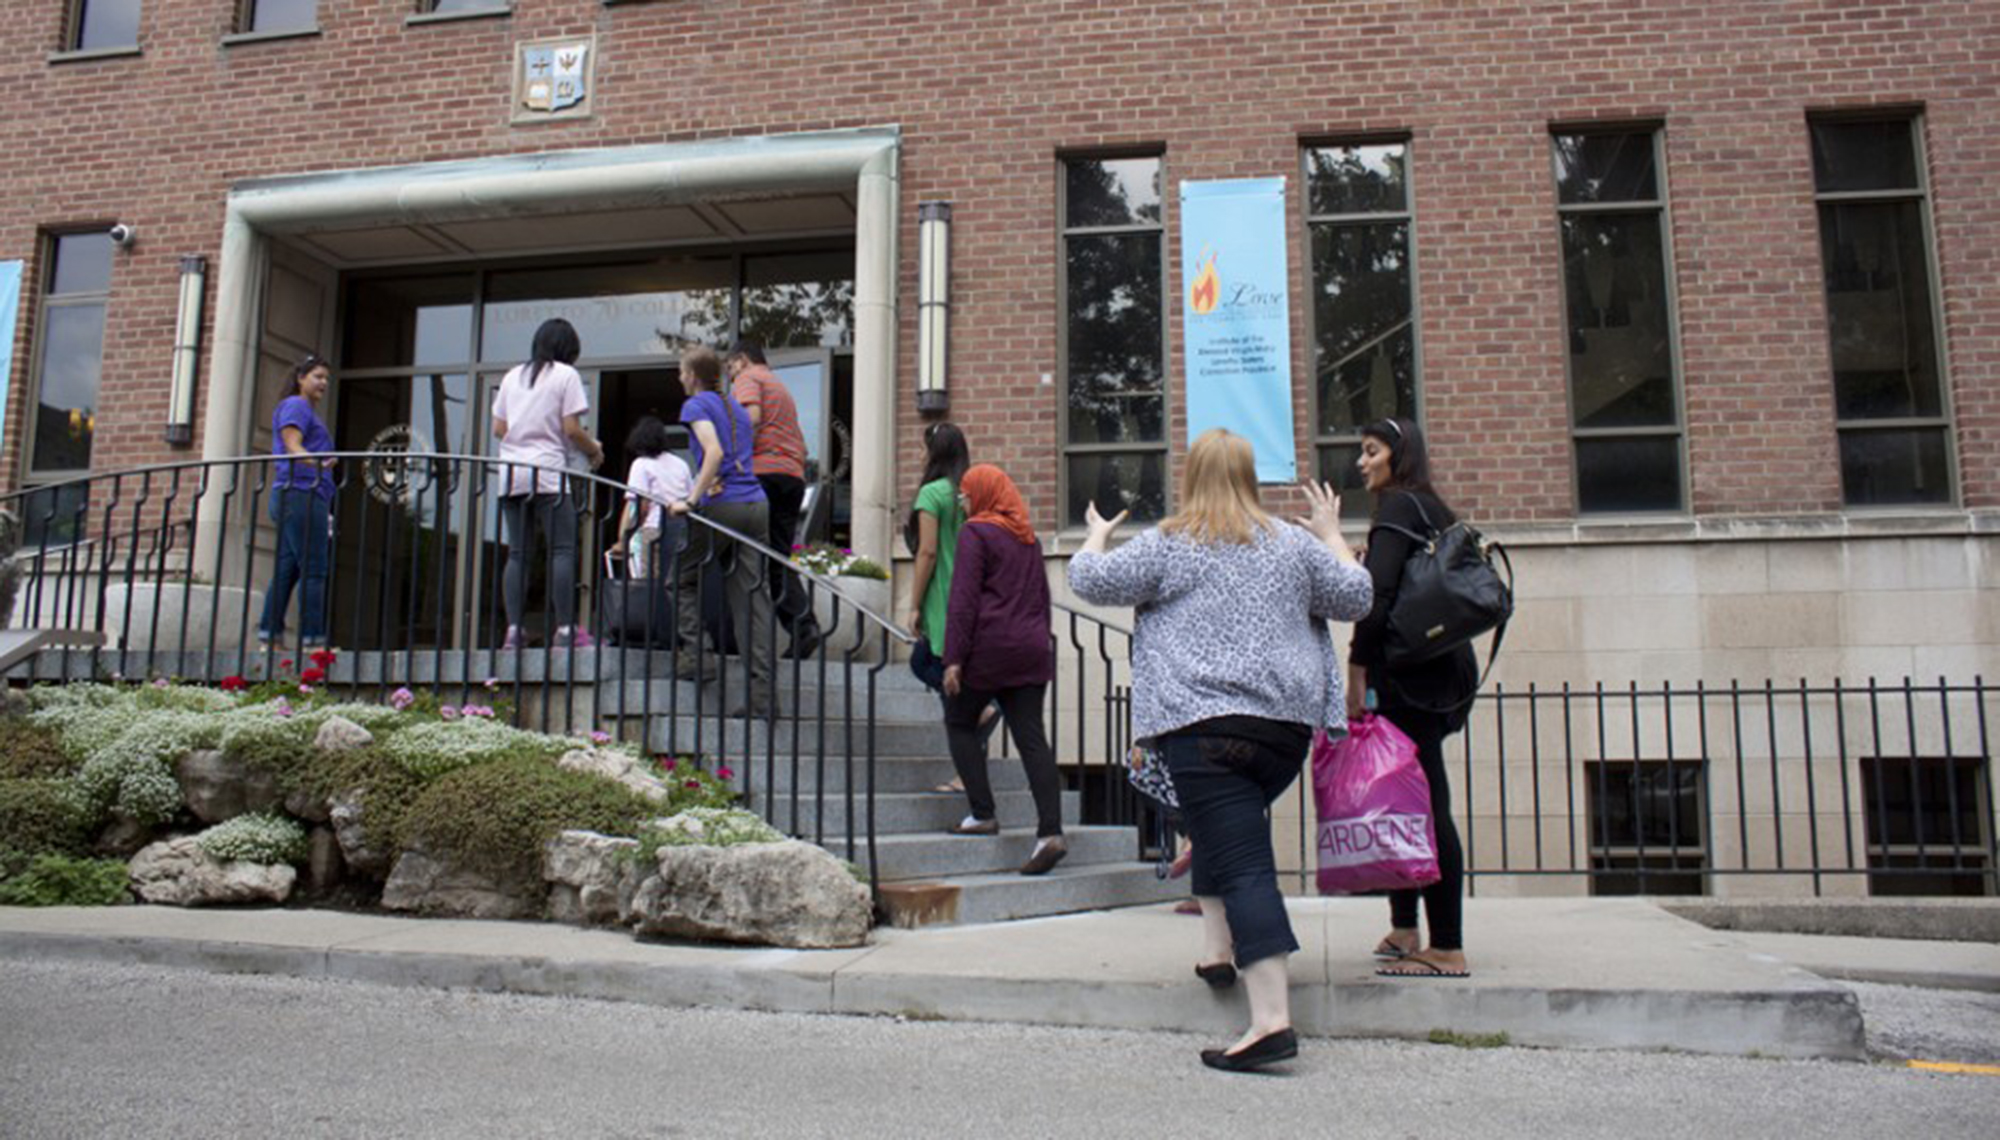 Students and parents at Loretto on moving day (photo by Carolyn Levett, The Varsity)